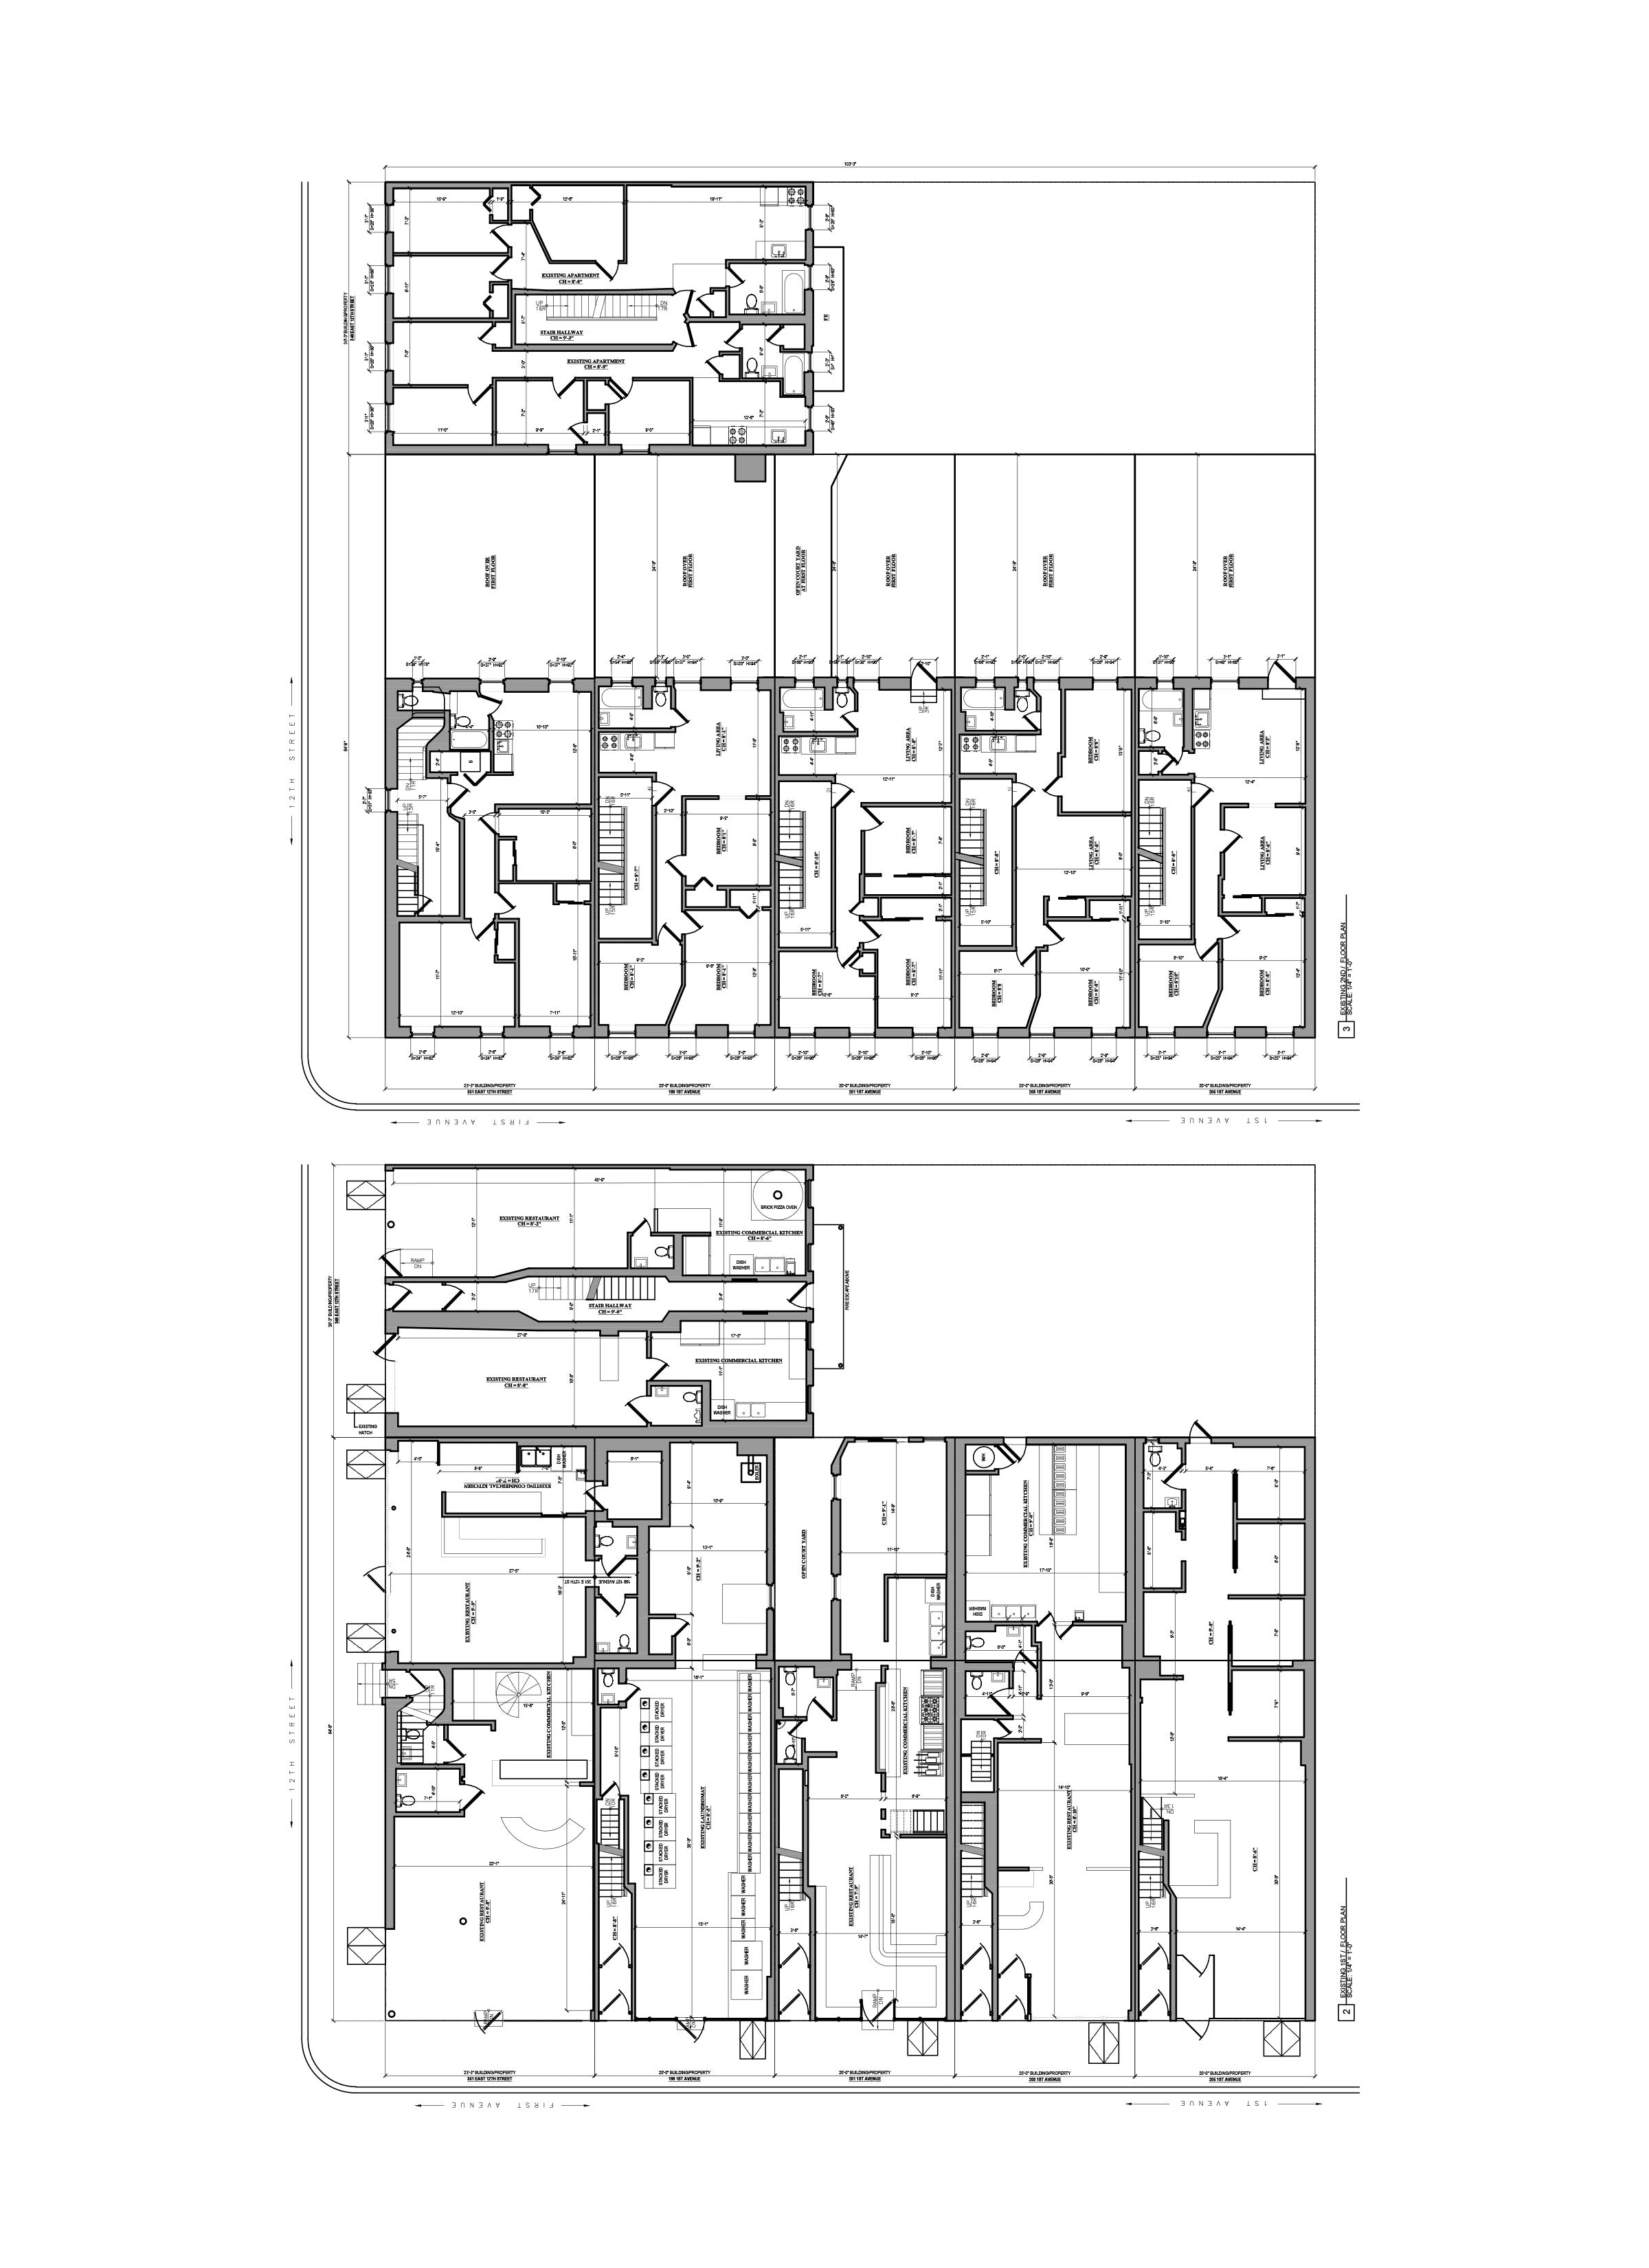 AutoCAD Drafting-As Built Drawings _Mix-use Building, NYC